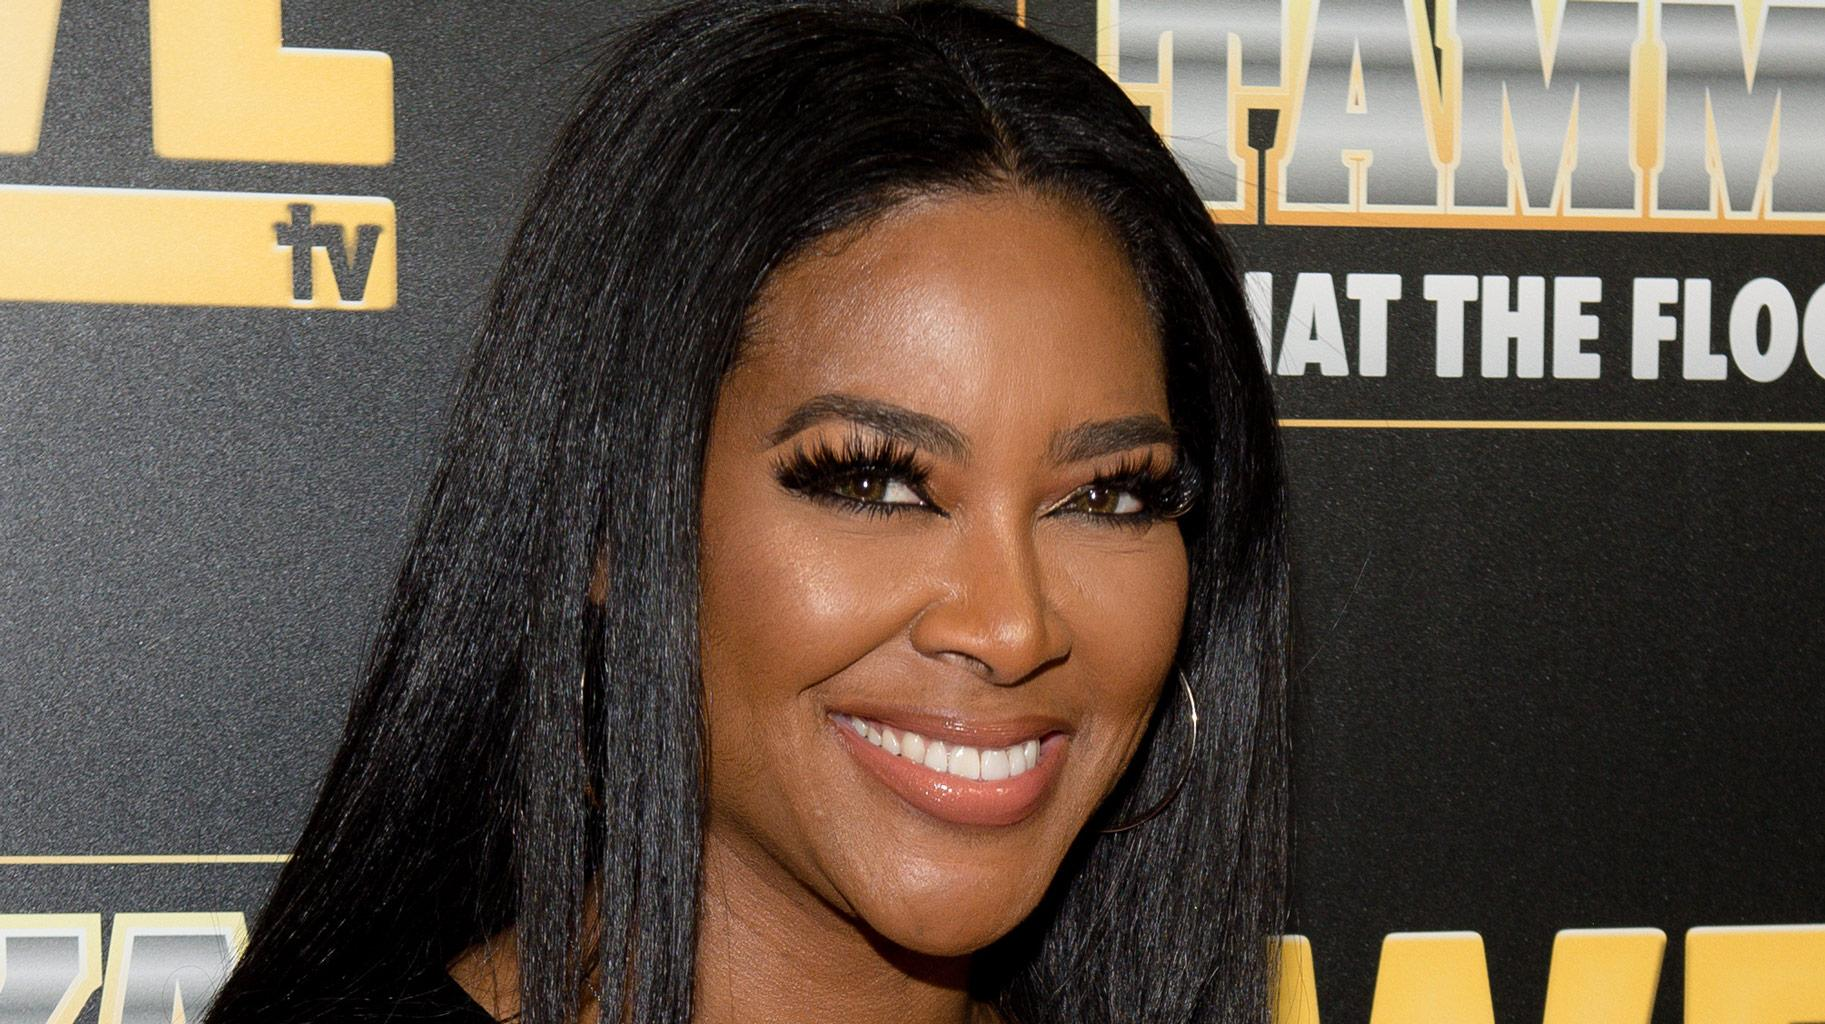 Kenya Moore Loves To Travel In Style - See Her Outfit